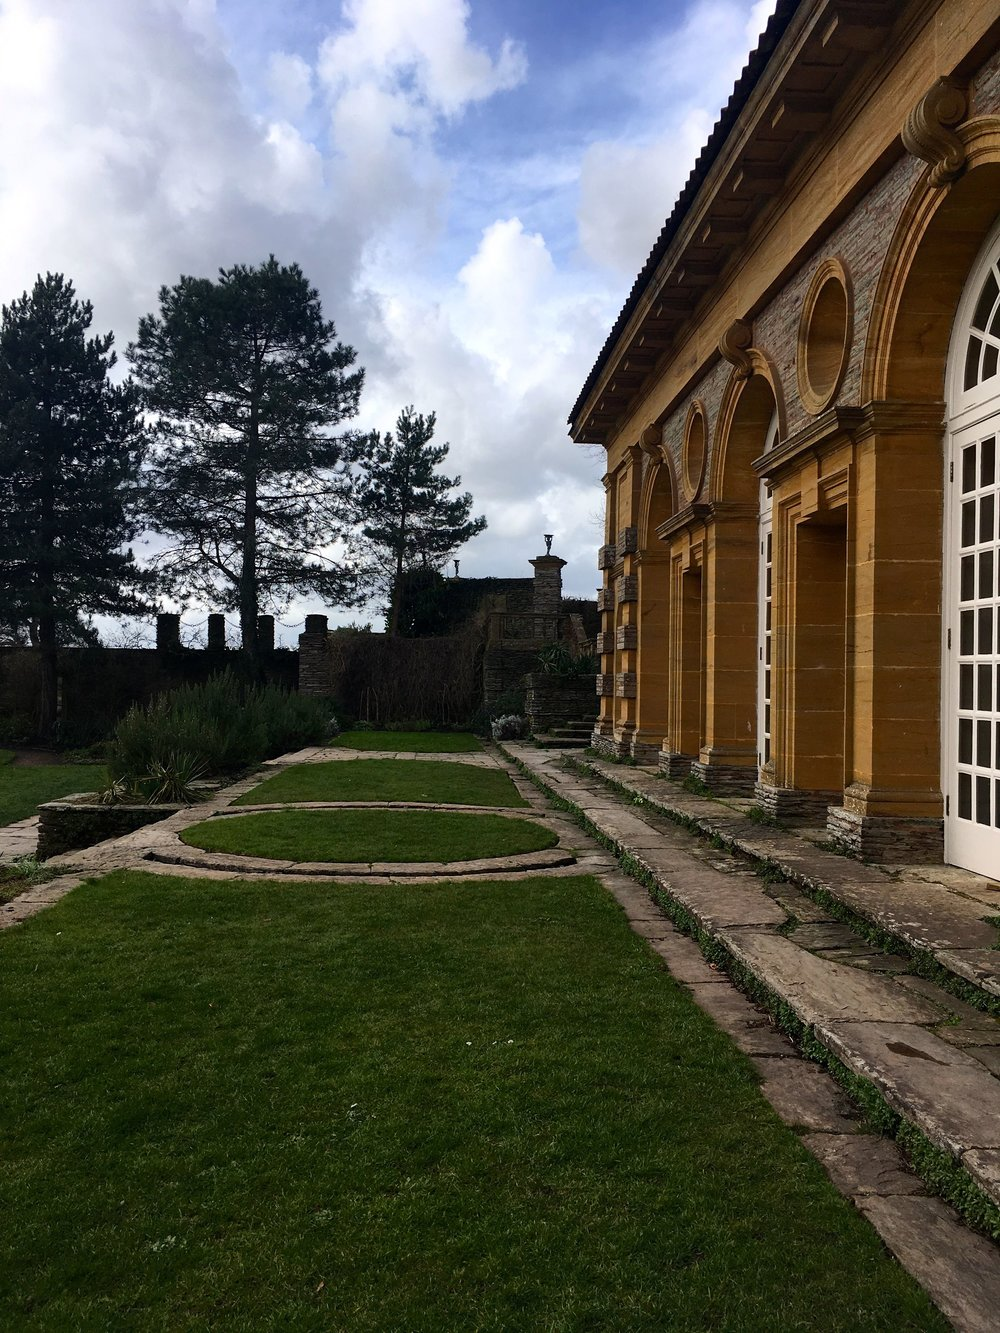 outside the orangery